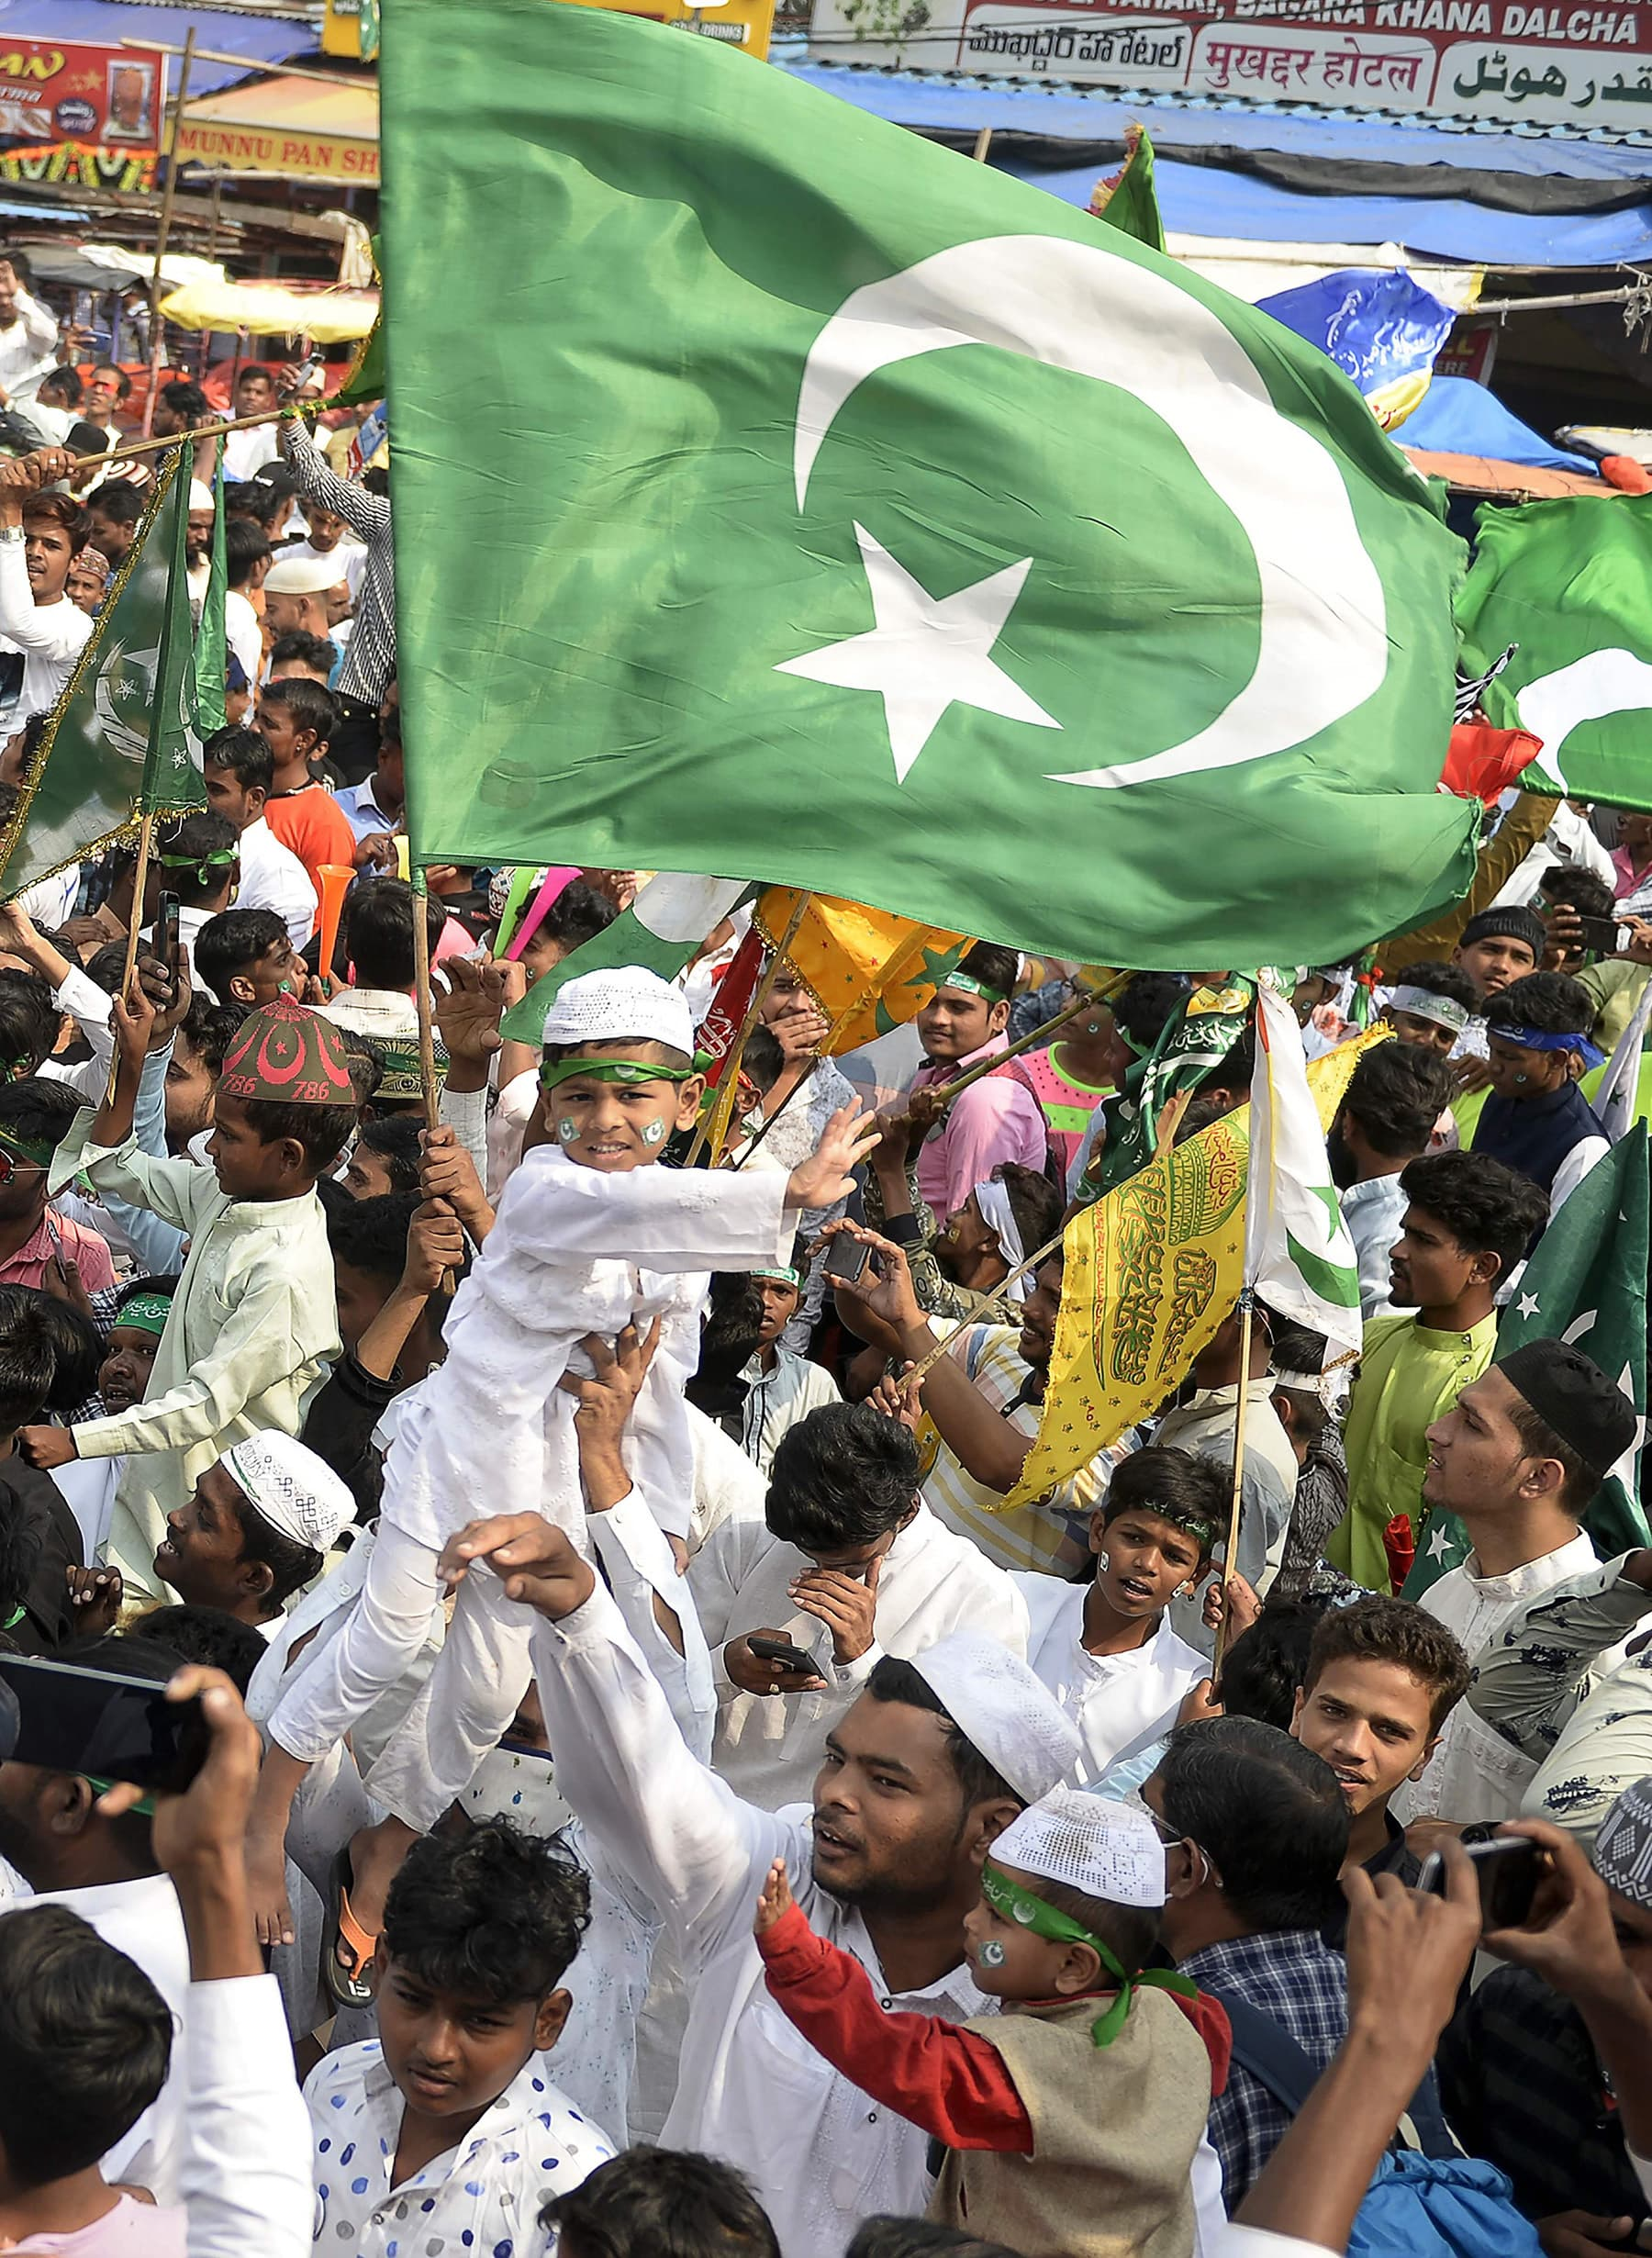 Devotees participate in a procession during Eid-i-Miladun Nabi in Hyderabad, India on October 30. — AFP